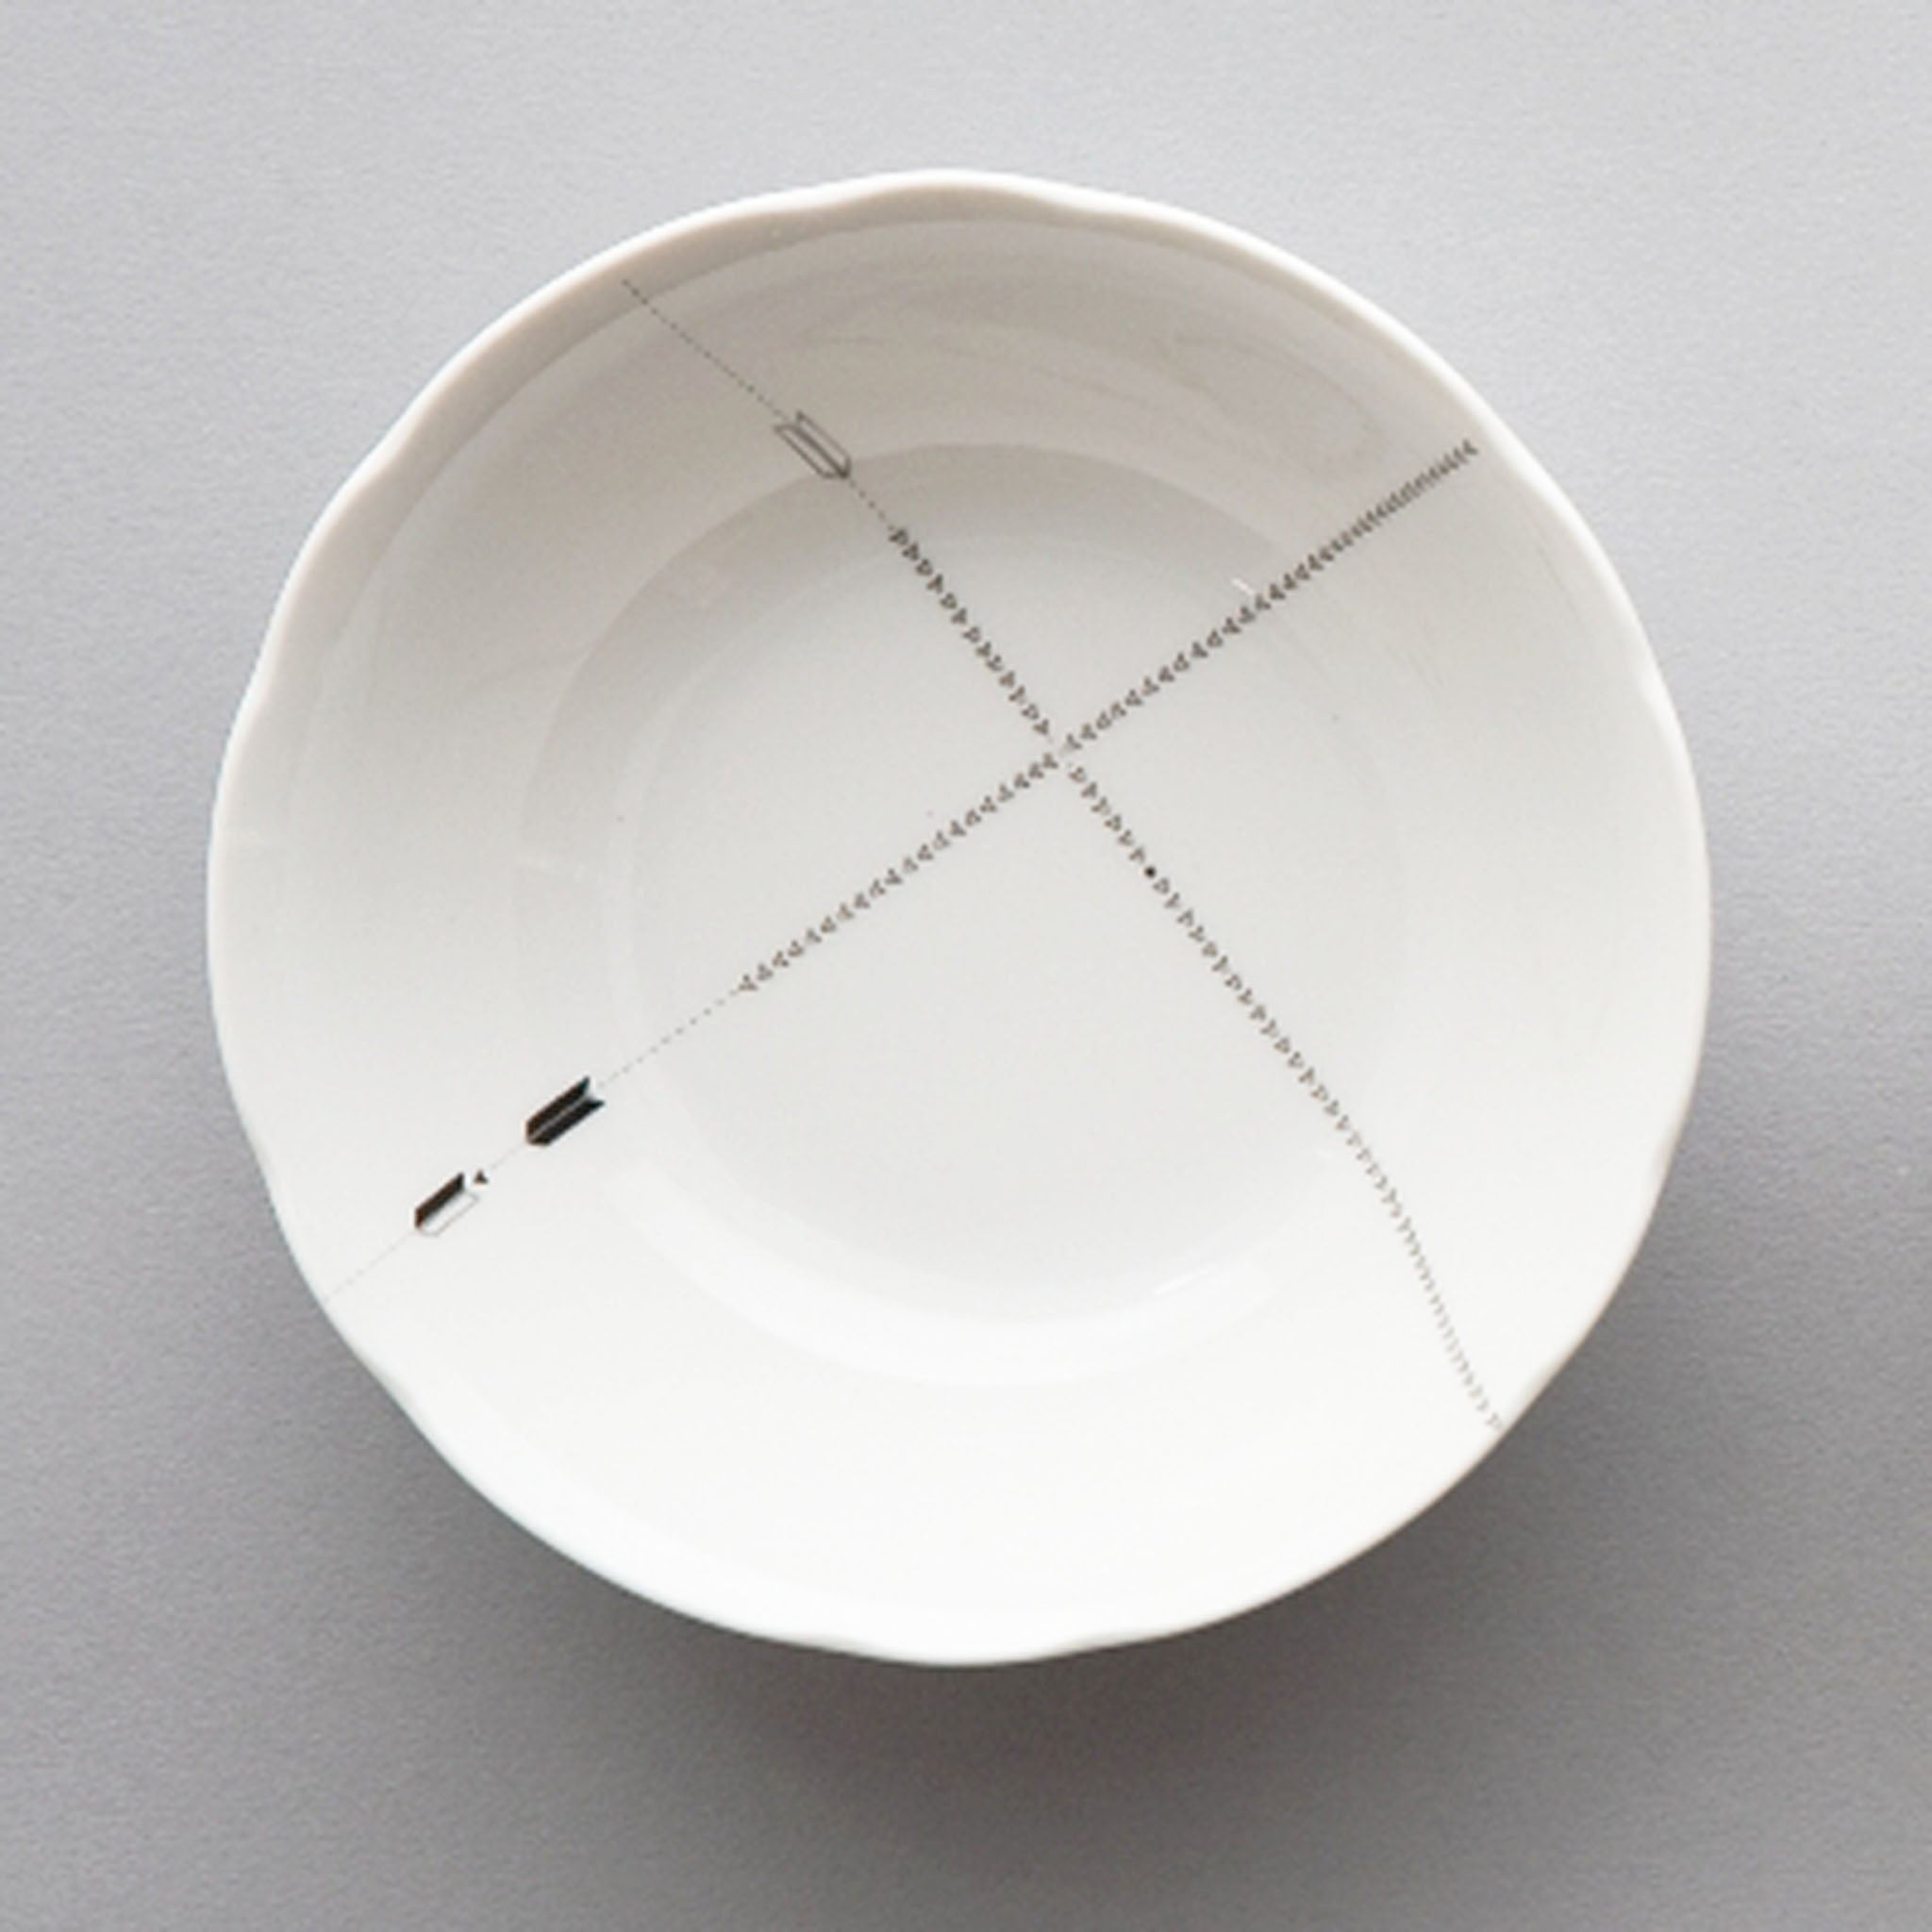 Designed by Colene Blanchet and Annie Lenon, Saetta dishware collection is inspired by maps, paths, geometry, space and lightning.